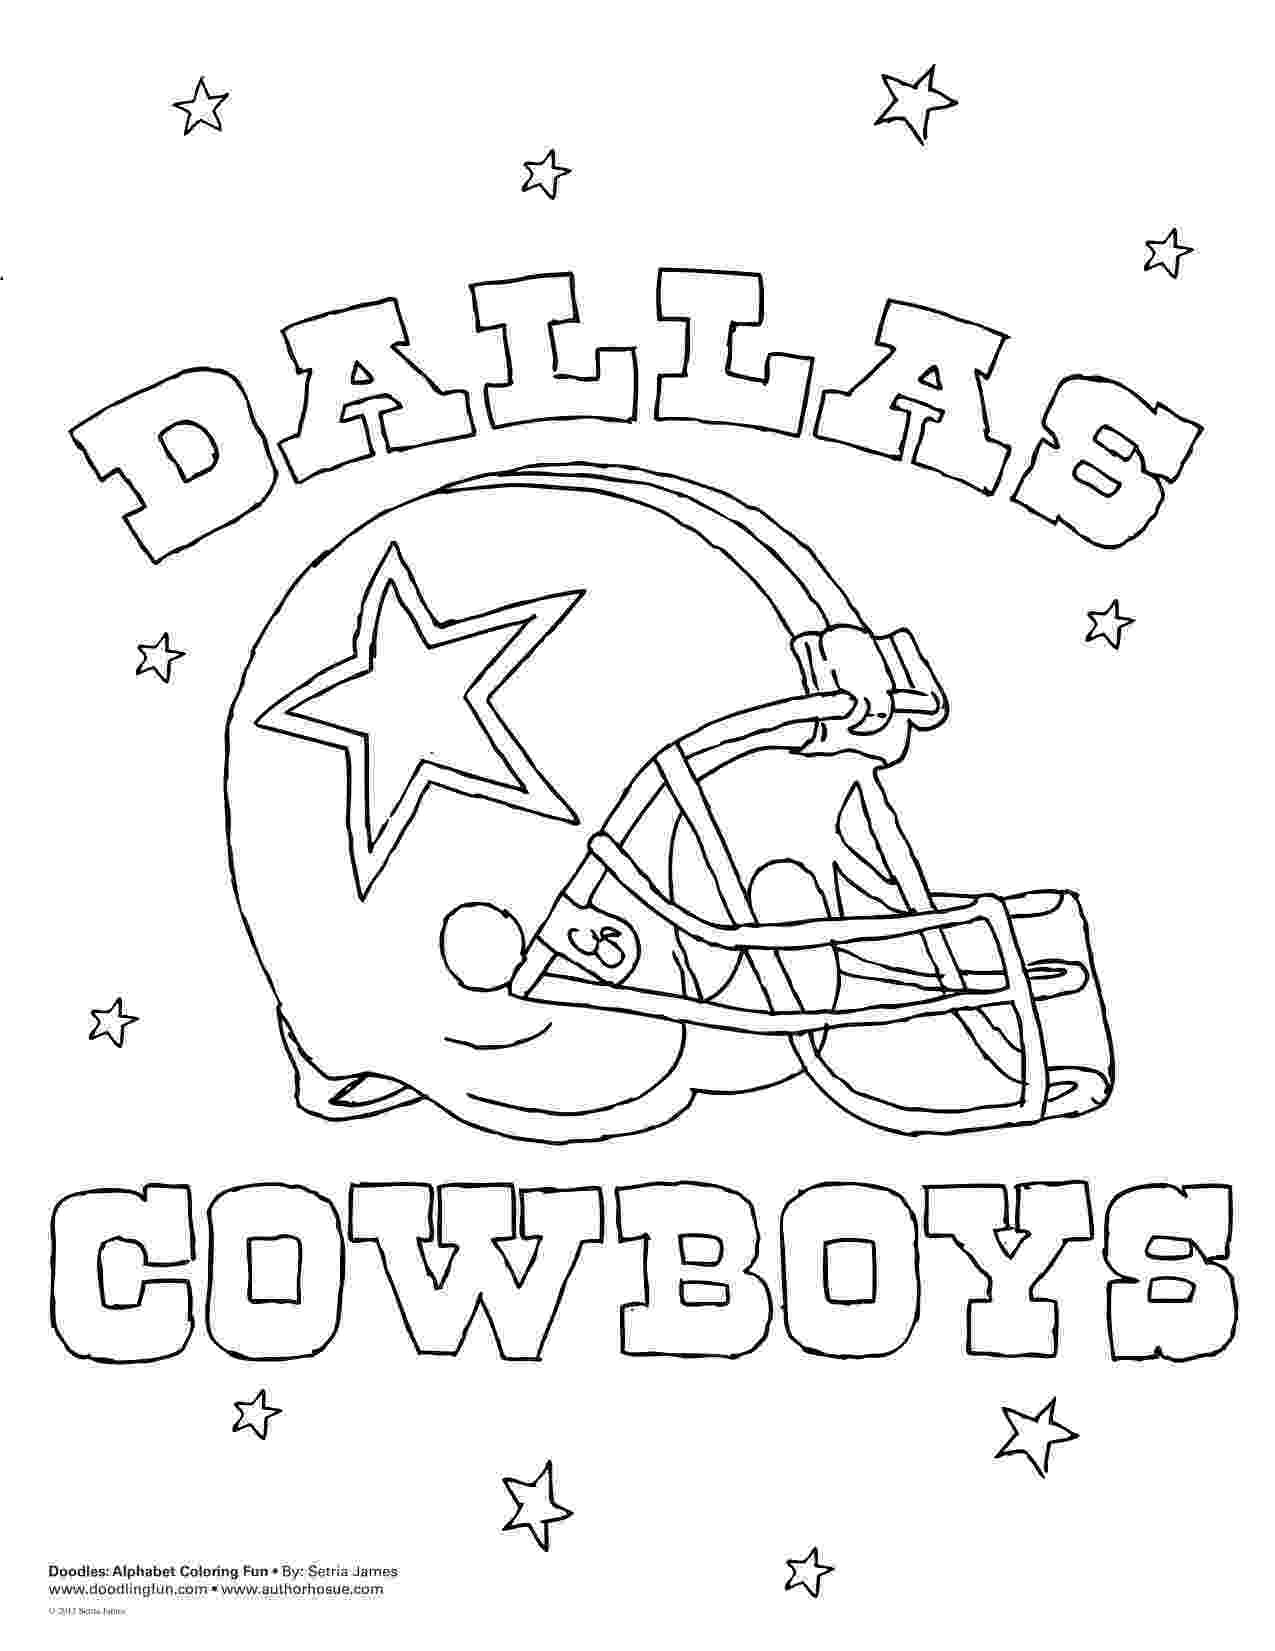 cowboy coloring pages football fans coloring sheet doodles ave coloring pages cowboy